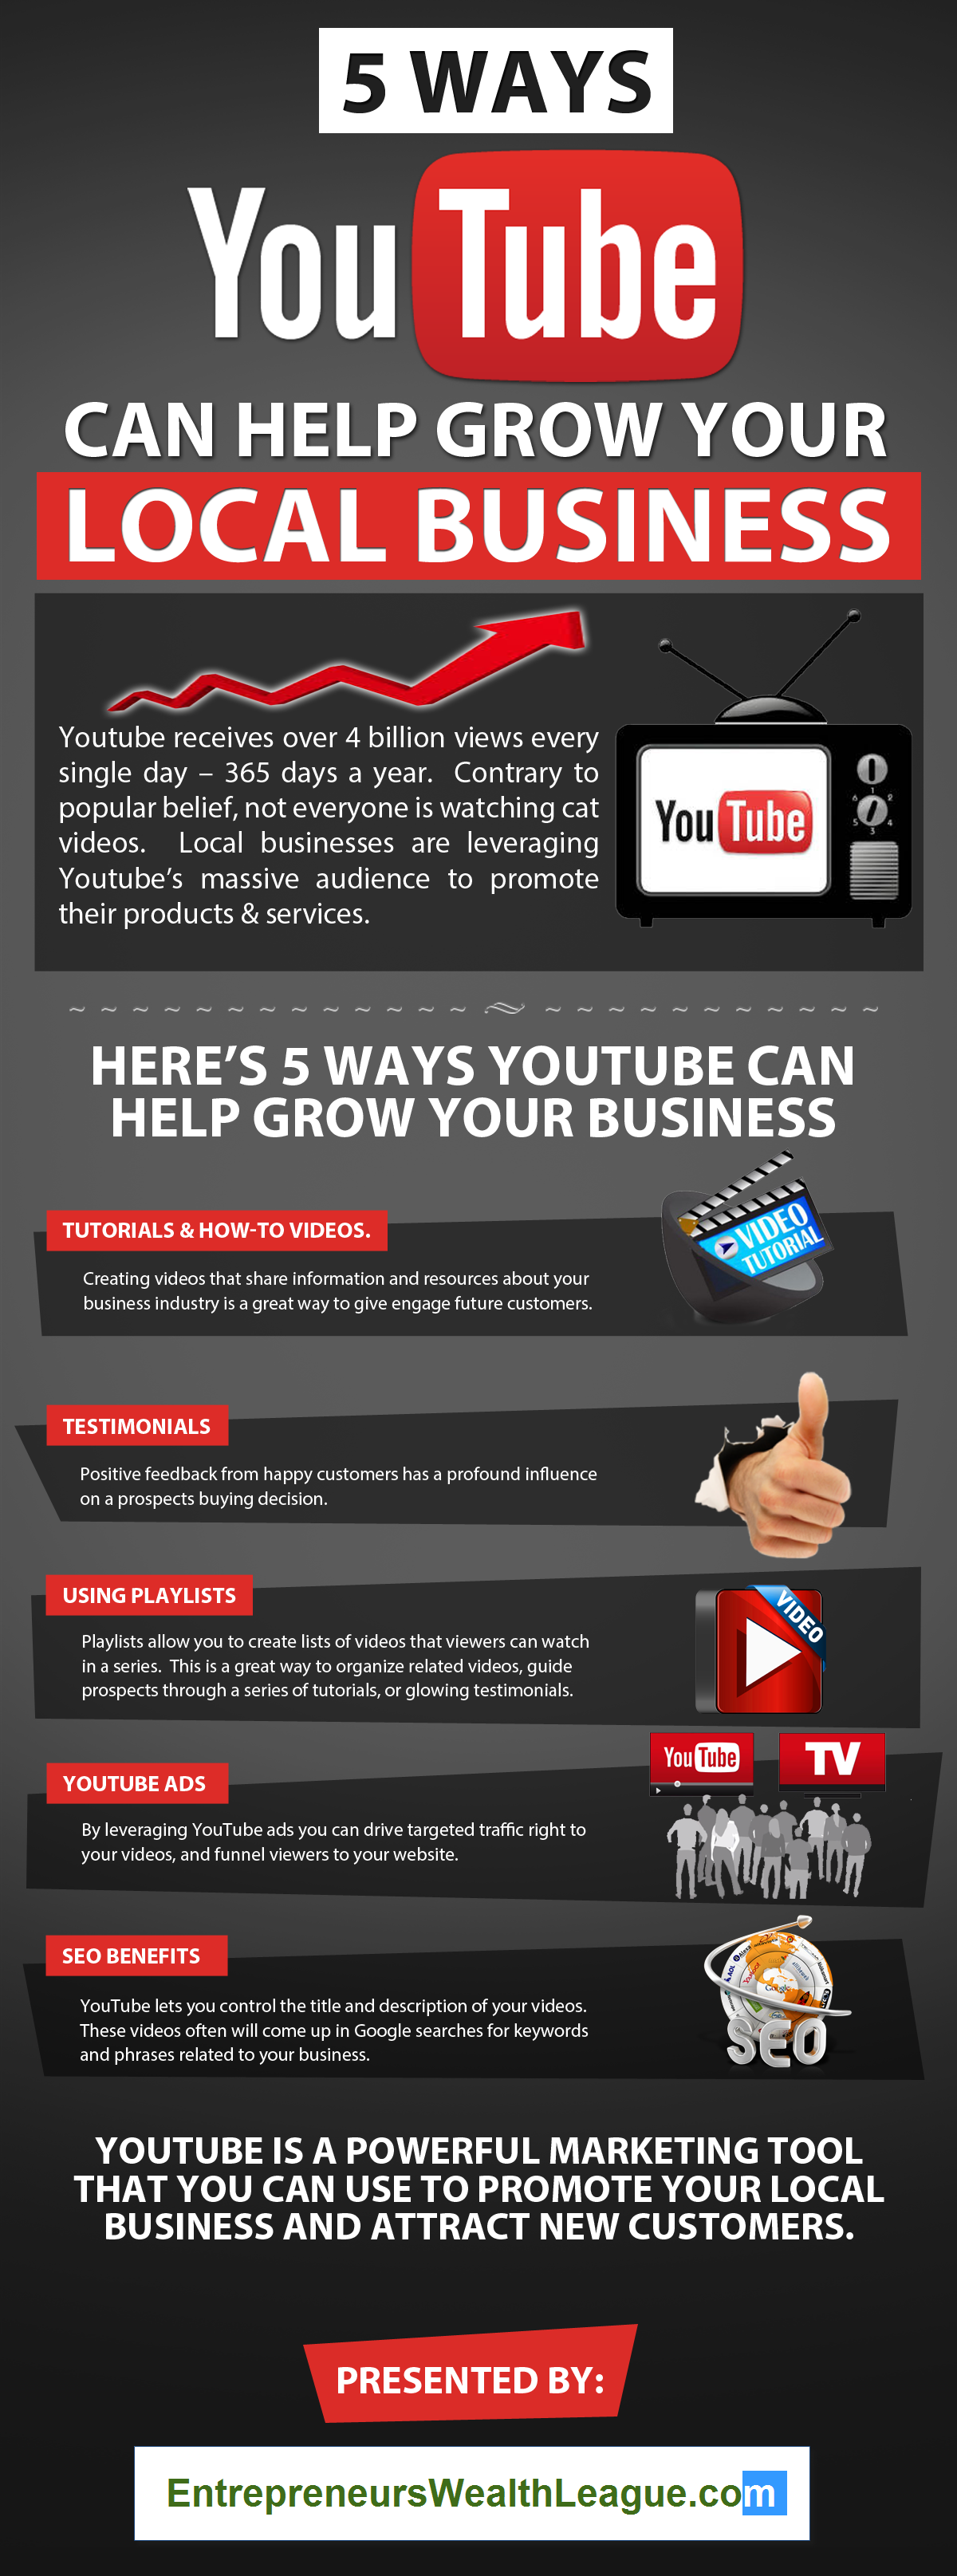 5 Ways YouTube Can Help Grow Your Local Business – Infographic